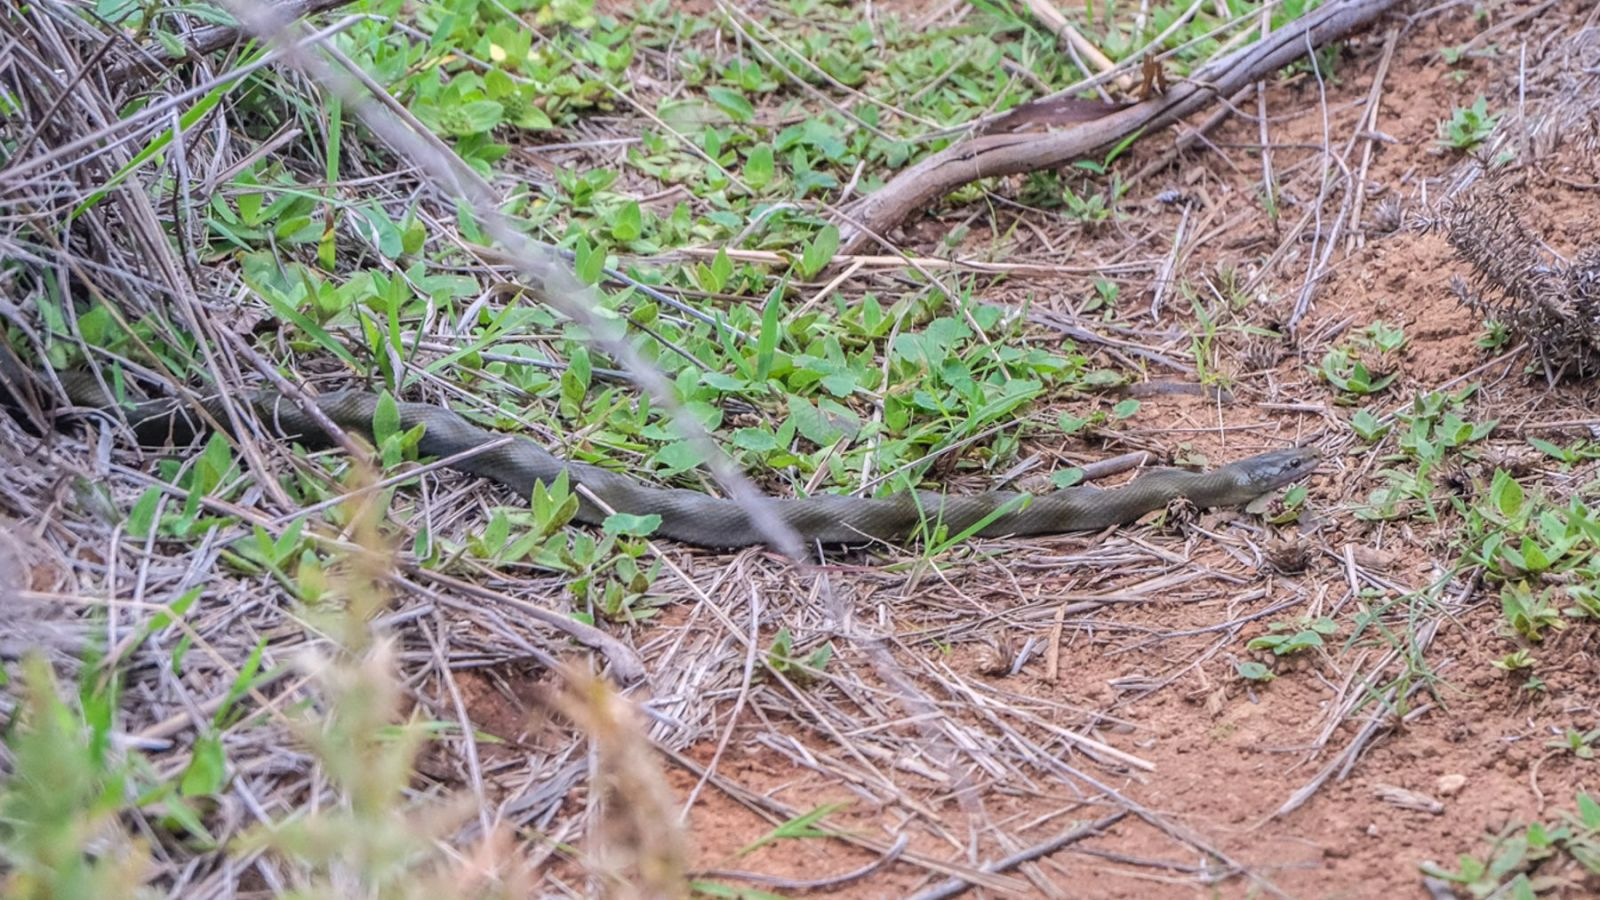 a photo of a snake on the amathole trail in south africa.